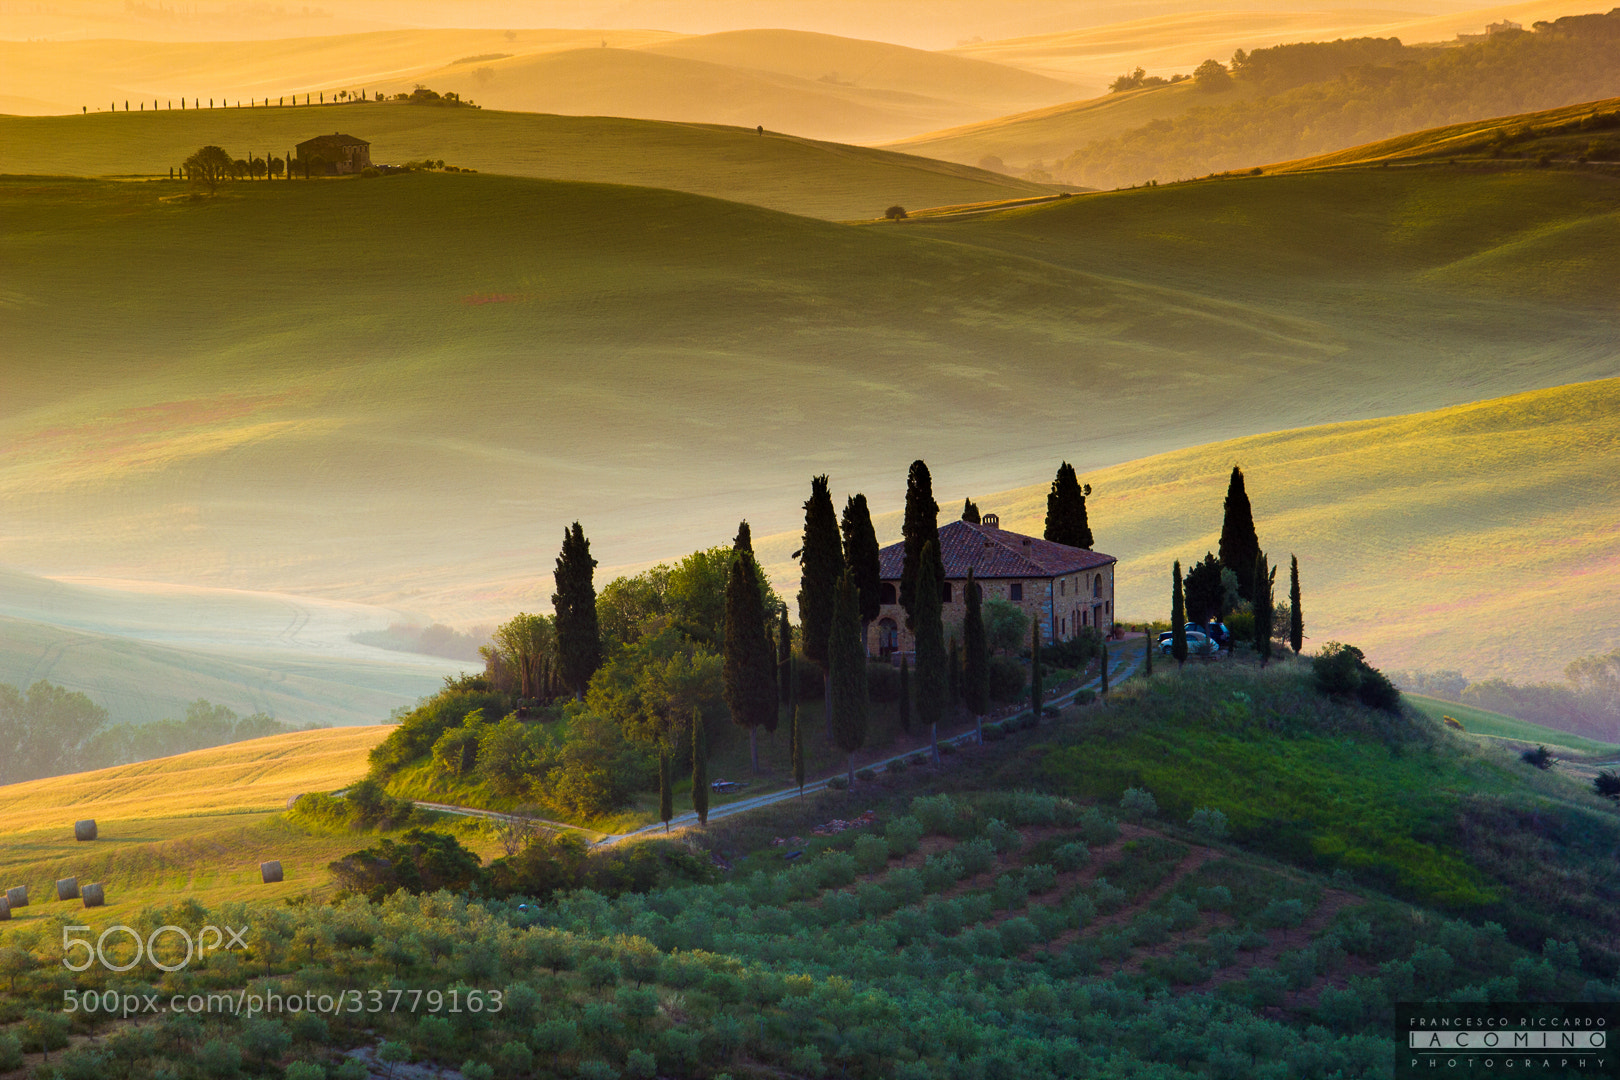 Photograph Dreamland by Francesco Riccardo Iacomino on 500px